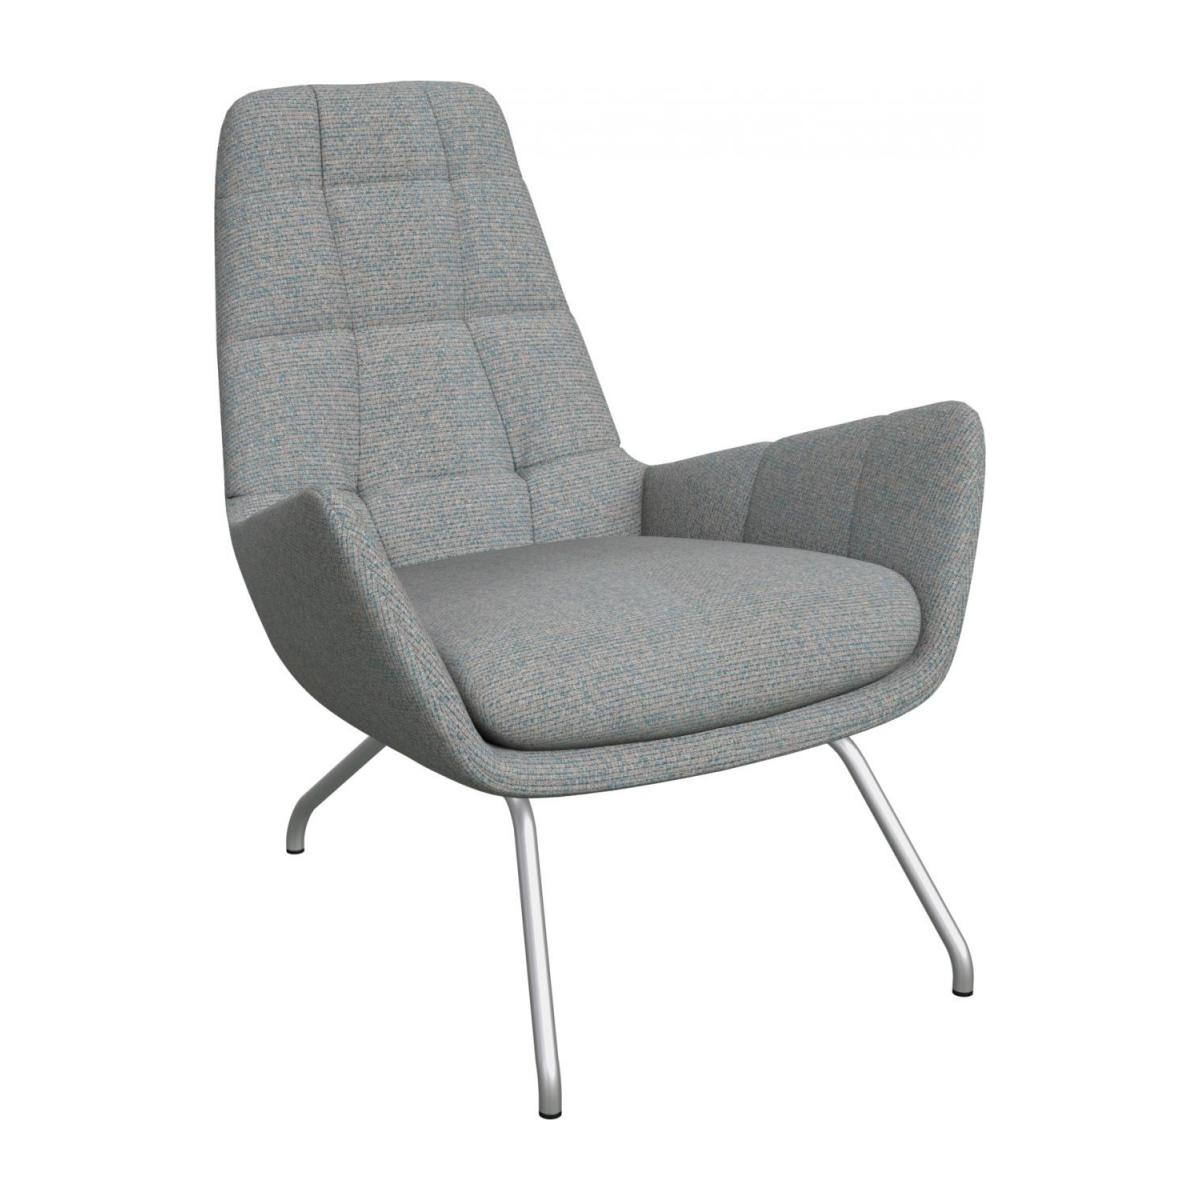 Armchair in Lecce fabric, blue reef with matt metal legs n°1